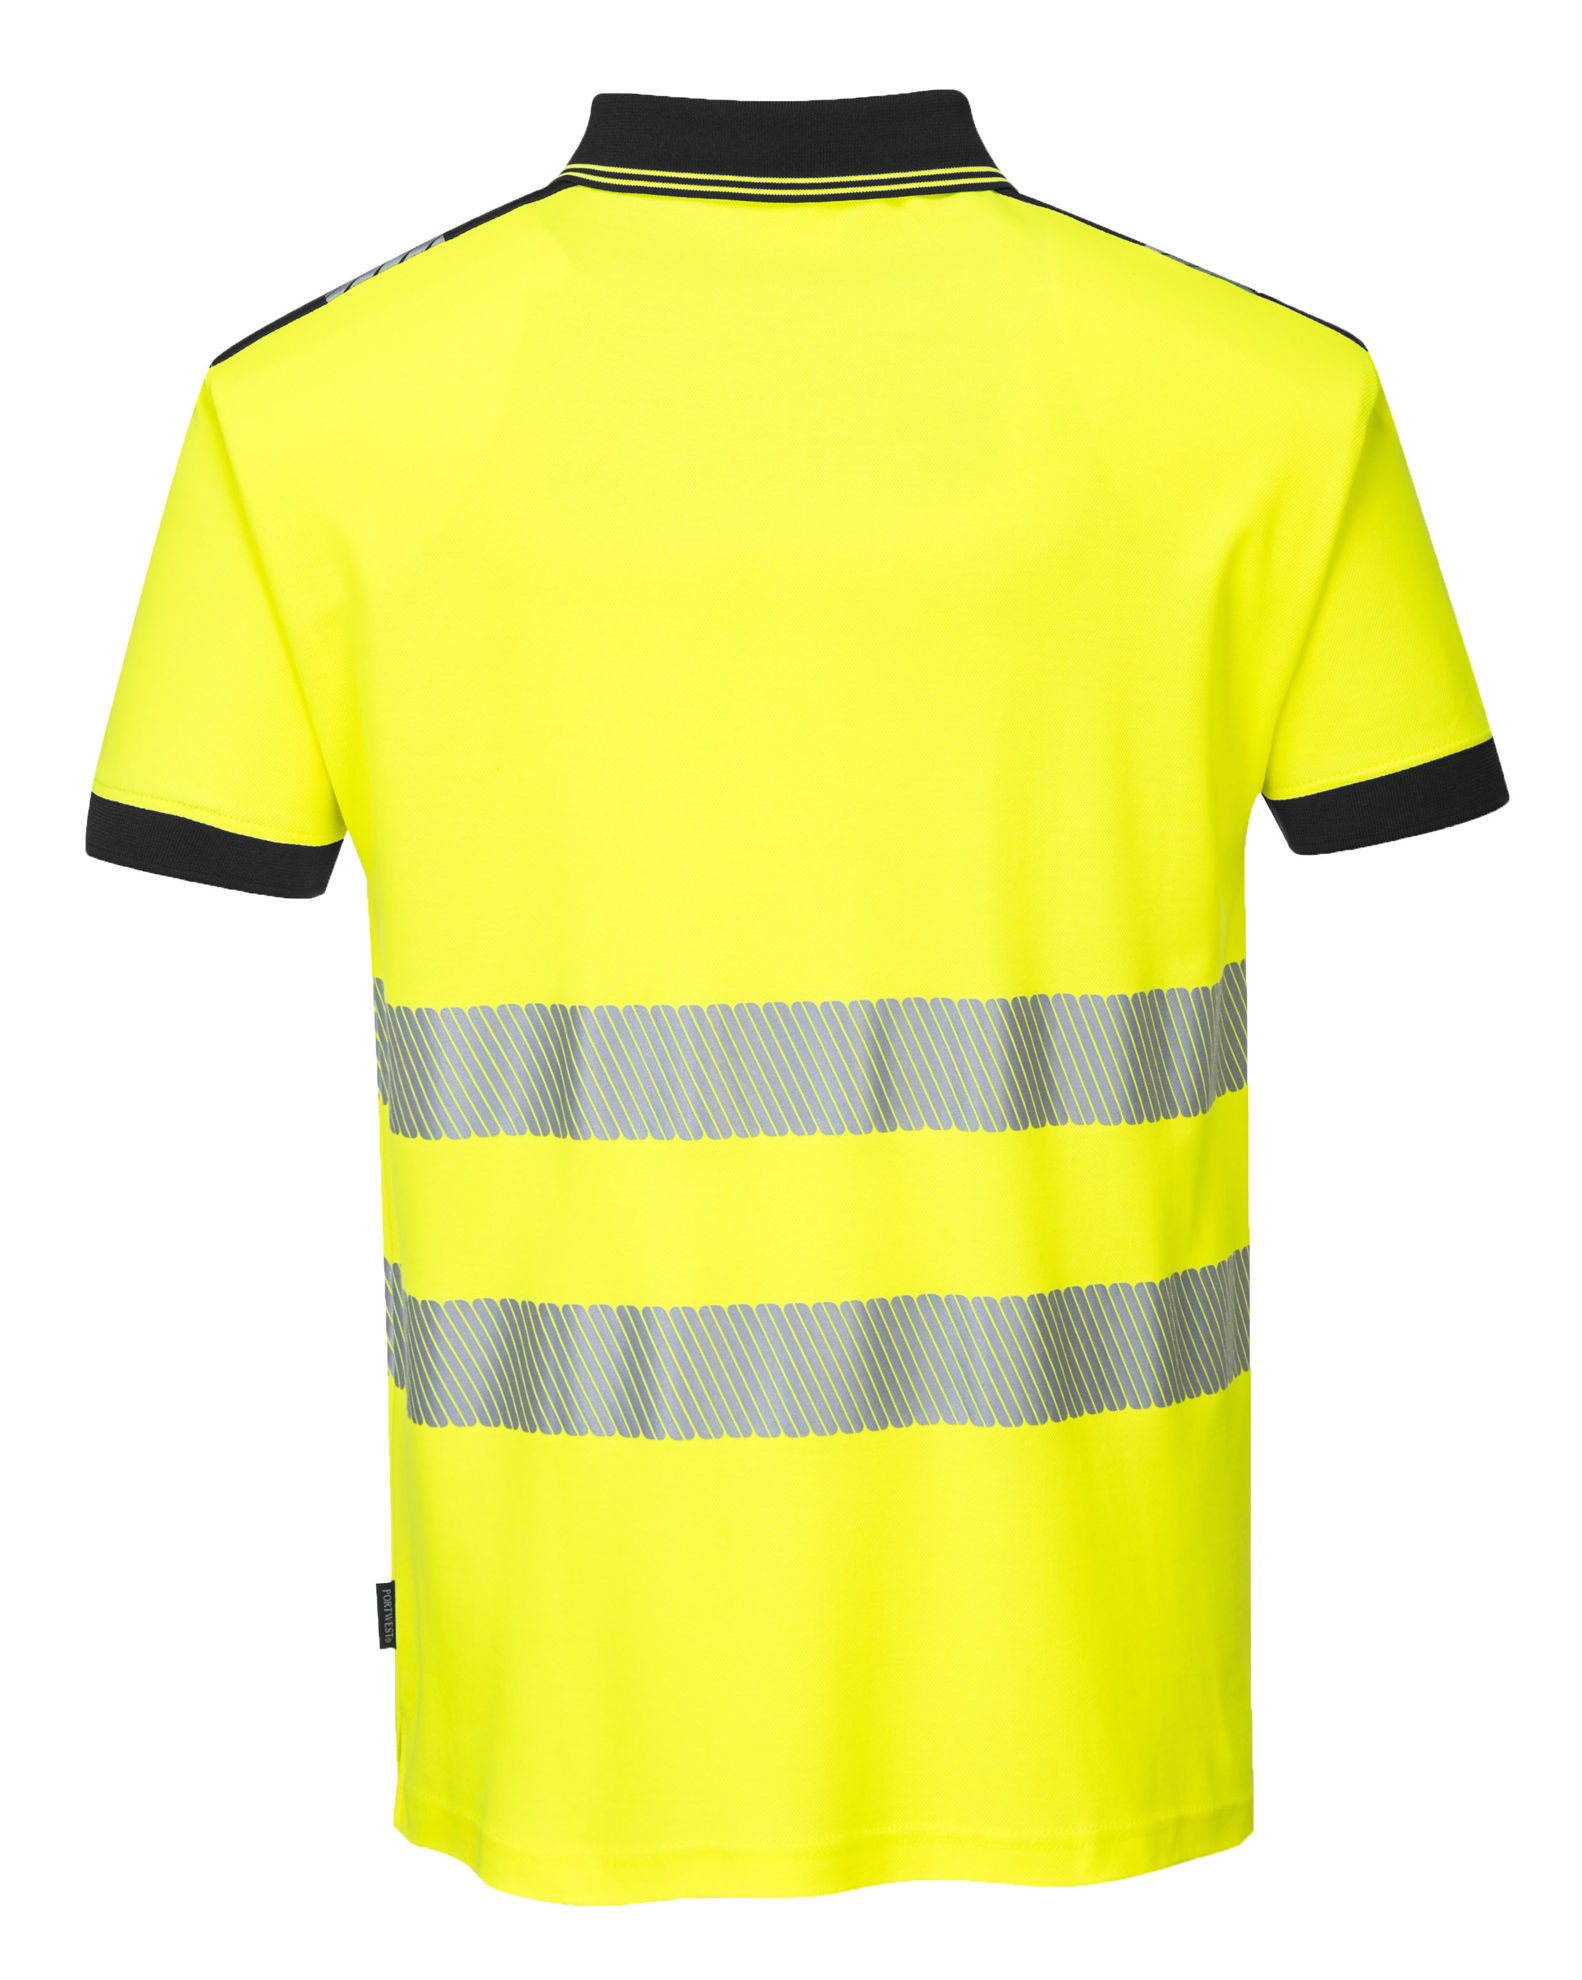 Picture of Portwest  PW3 Hi-Vis Shirt Sleeve Polo Shirt Yellow/Black